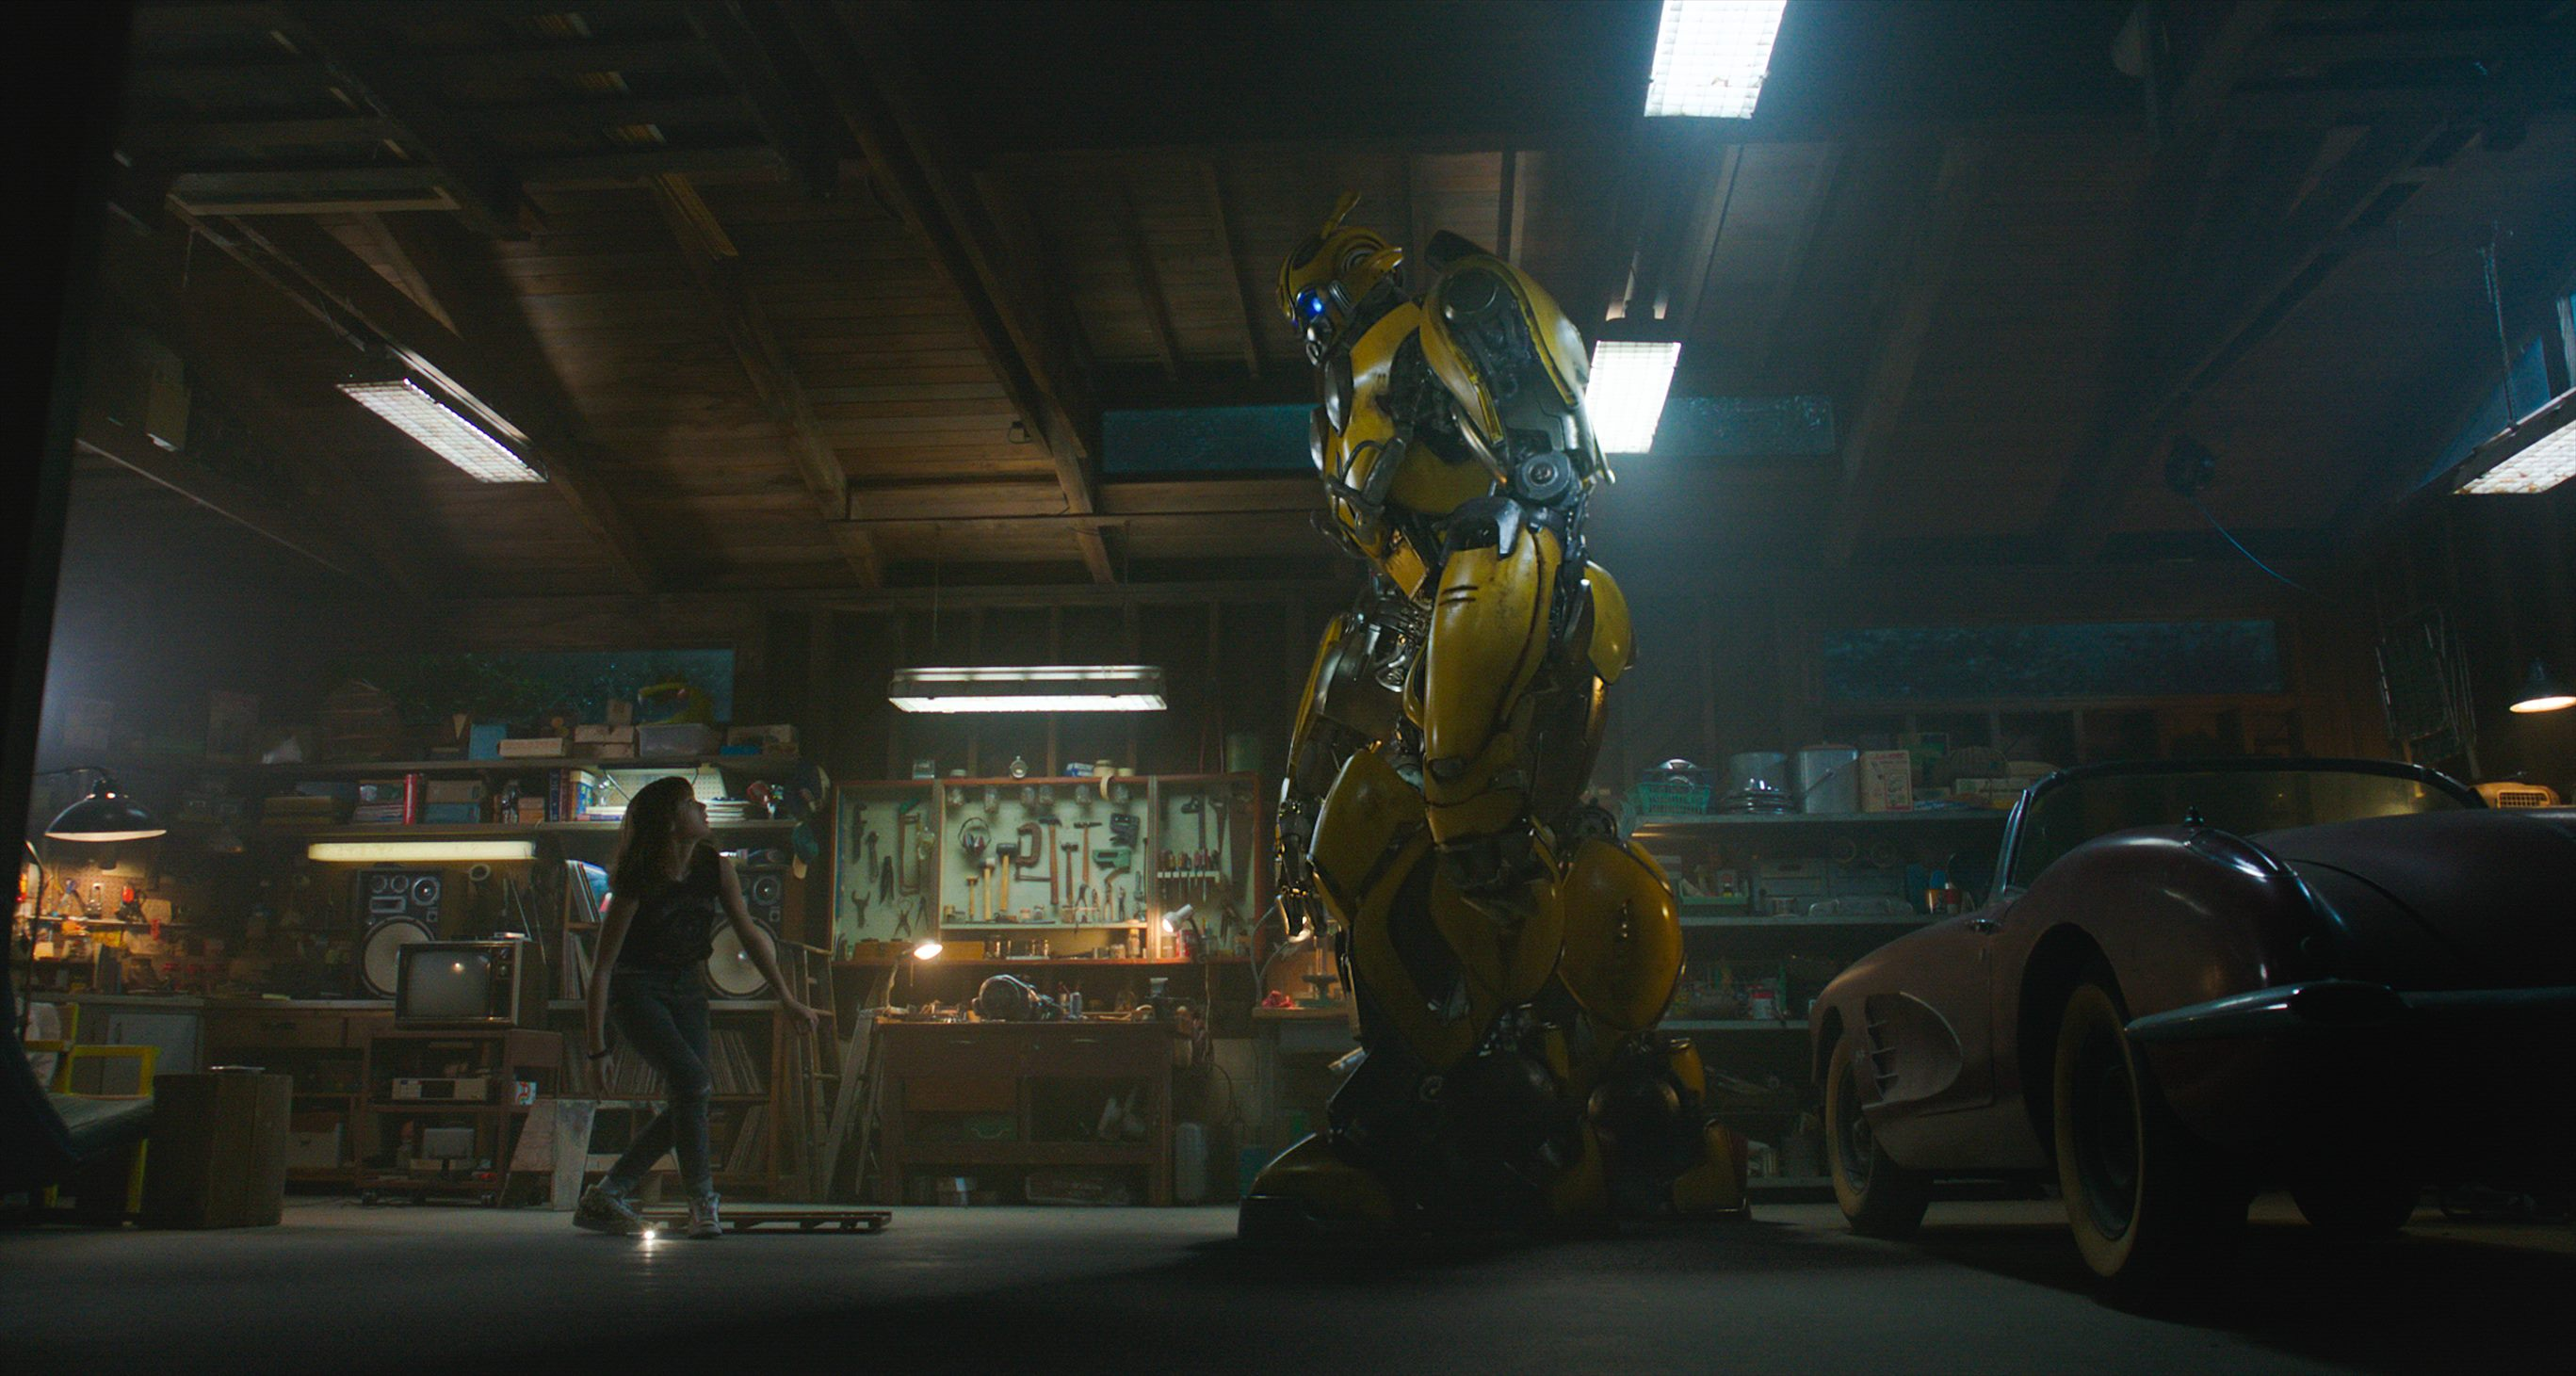 Hailee Steinfeld as Charlie and Bumblebee in BUMBLEBEE from Paramount Pictures.